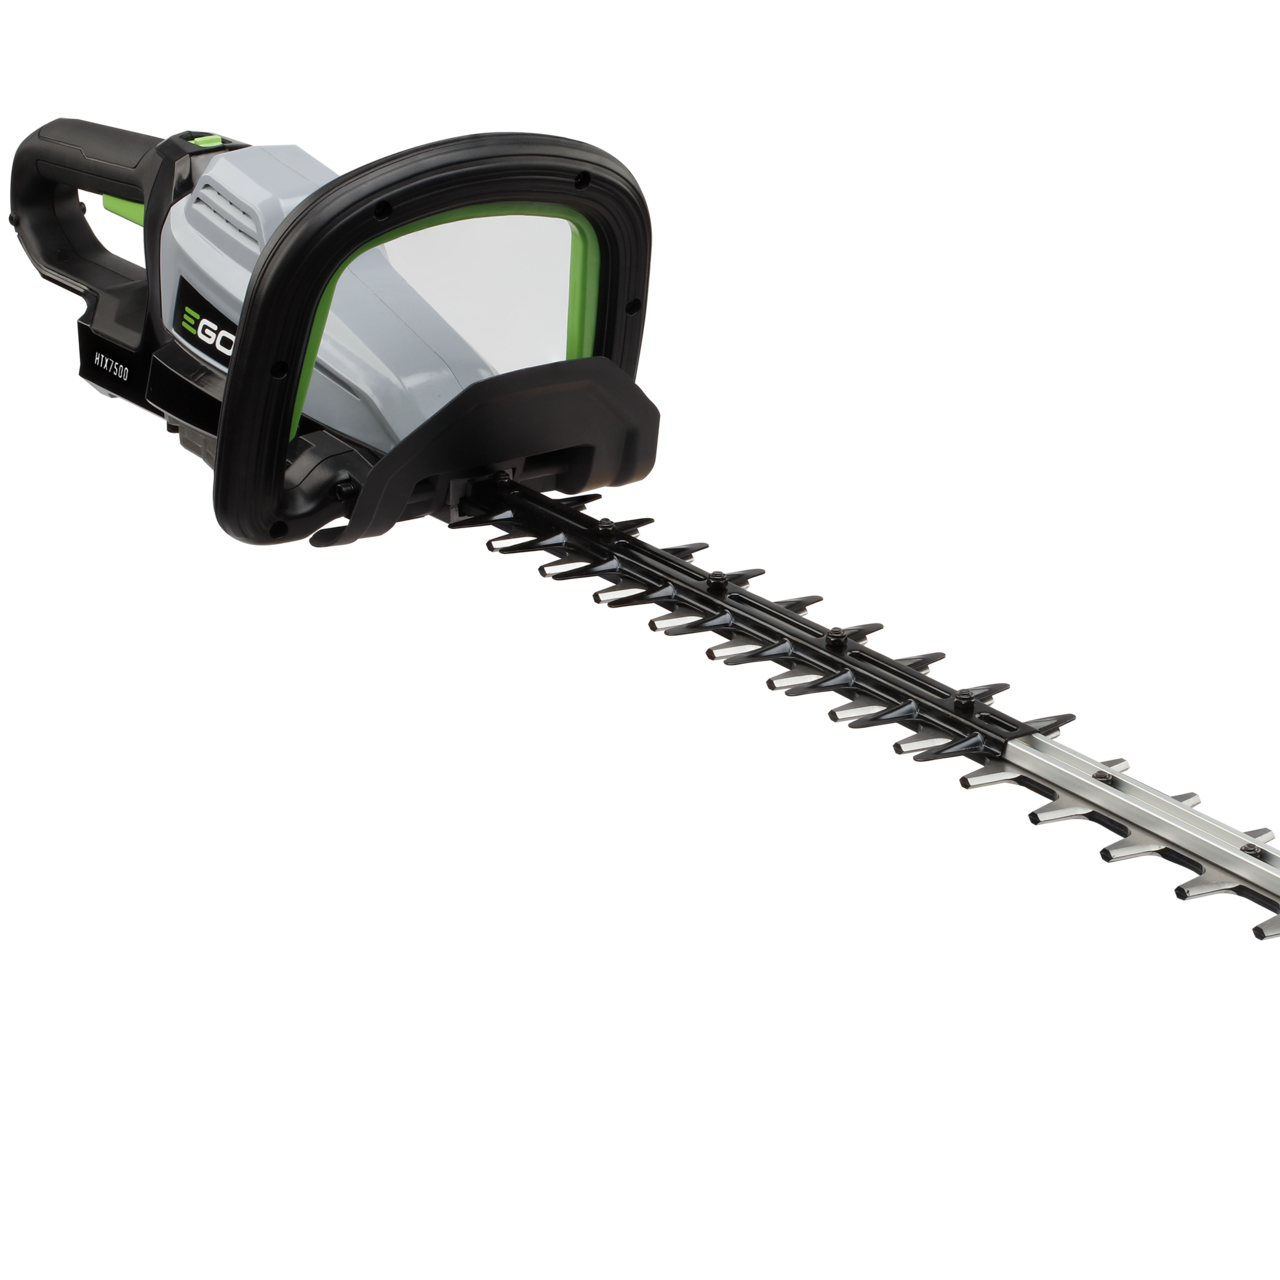 EGO HTX7500 Commercial Hedge Trimmer (shell only)